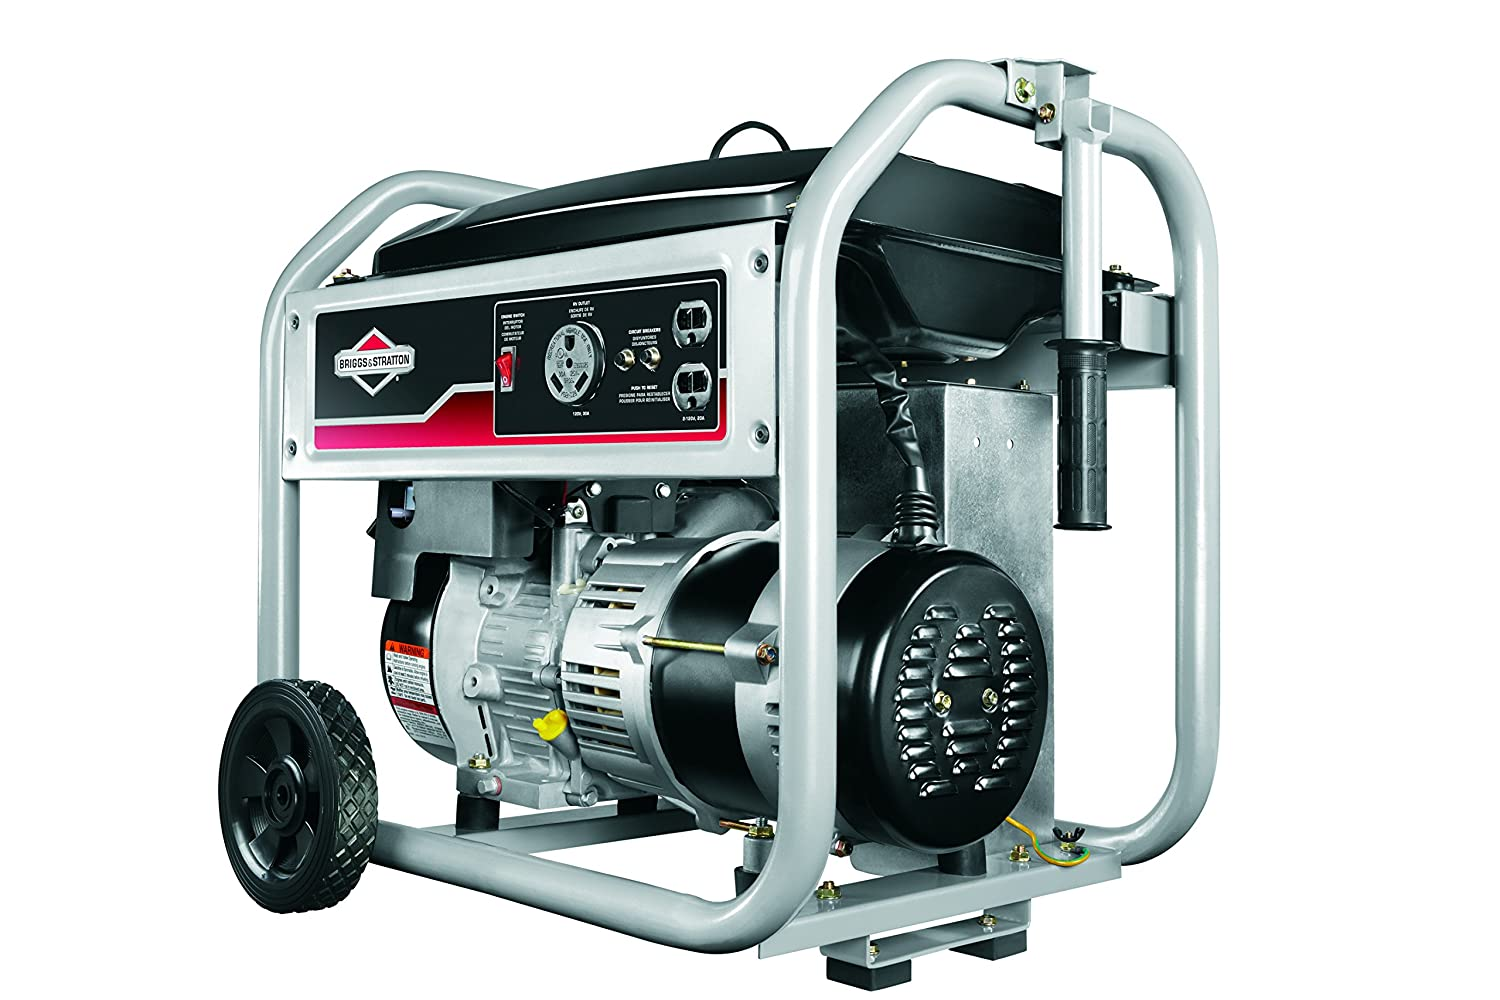 Briggs Stratton 30547 3500 Running Watts 4375 And Electrical Wiring Starting Gas Powered Portable Generatordiscontinued By Manufacturer Garden Outdoor